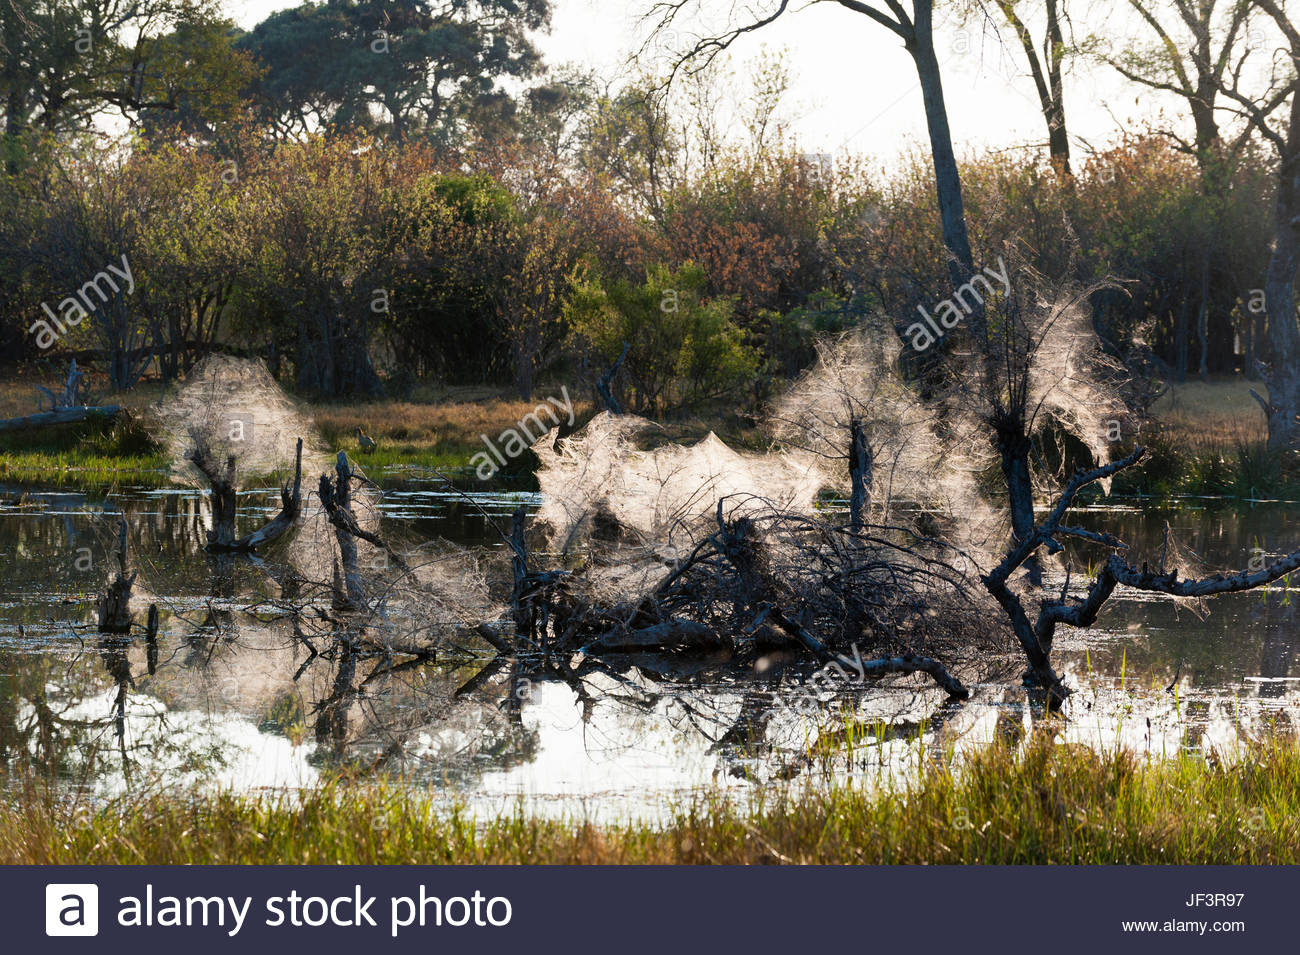 The webs of community spiders in dead tree snags lying in water. - Stock Image